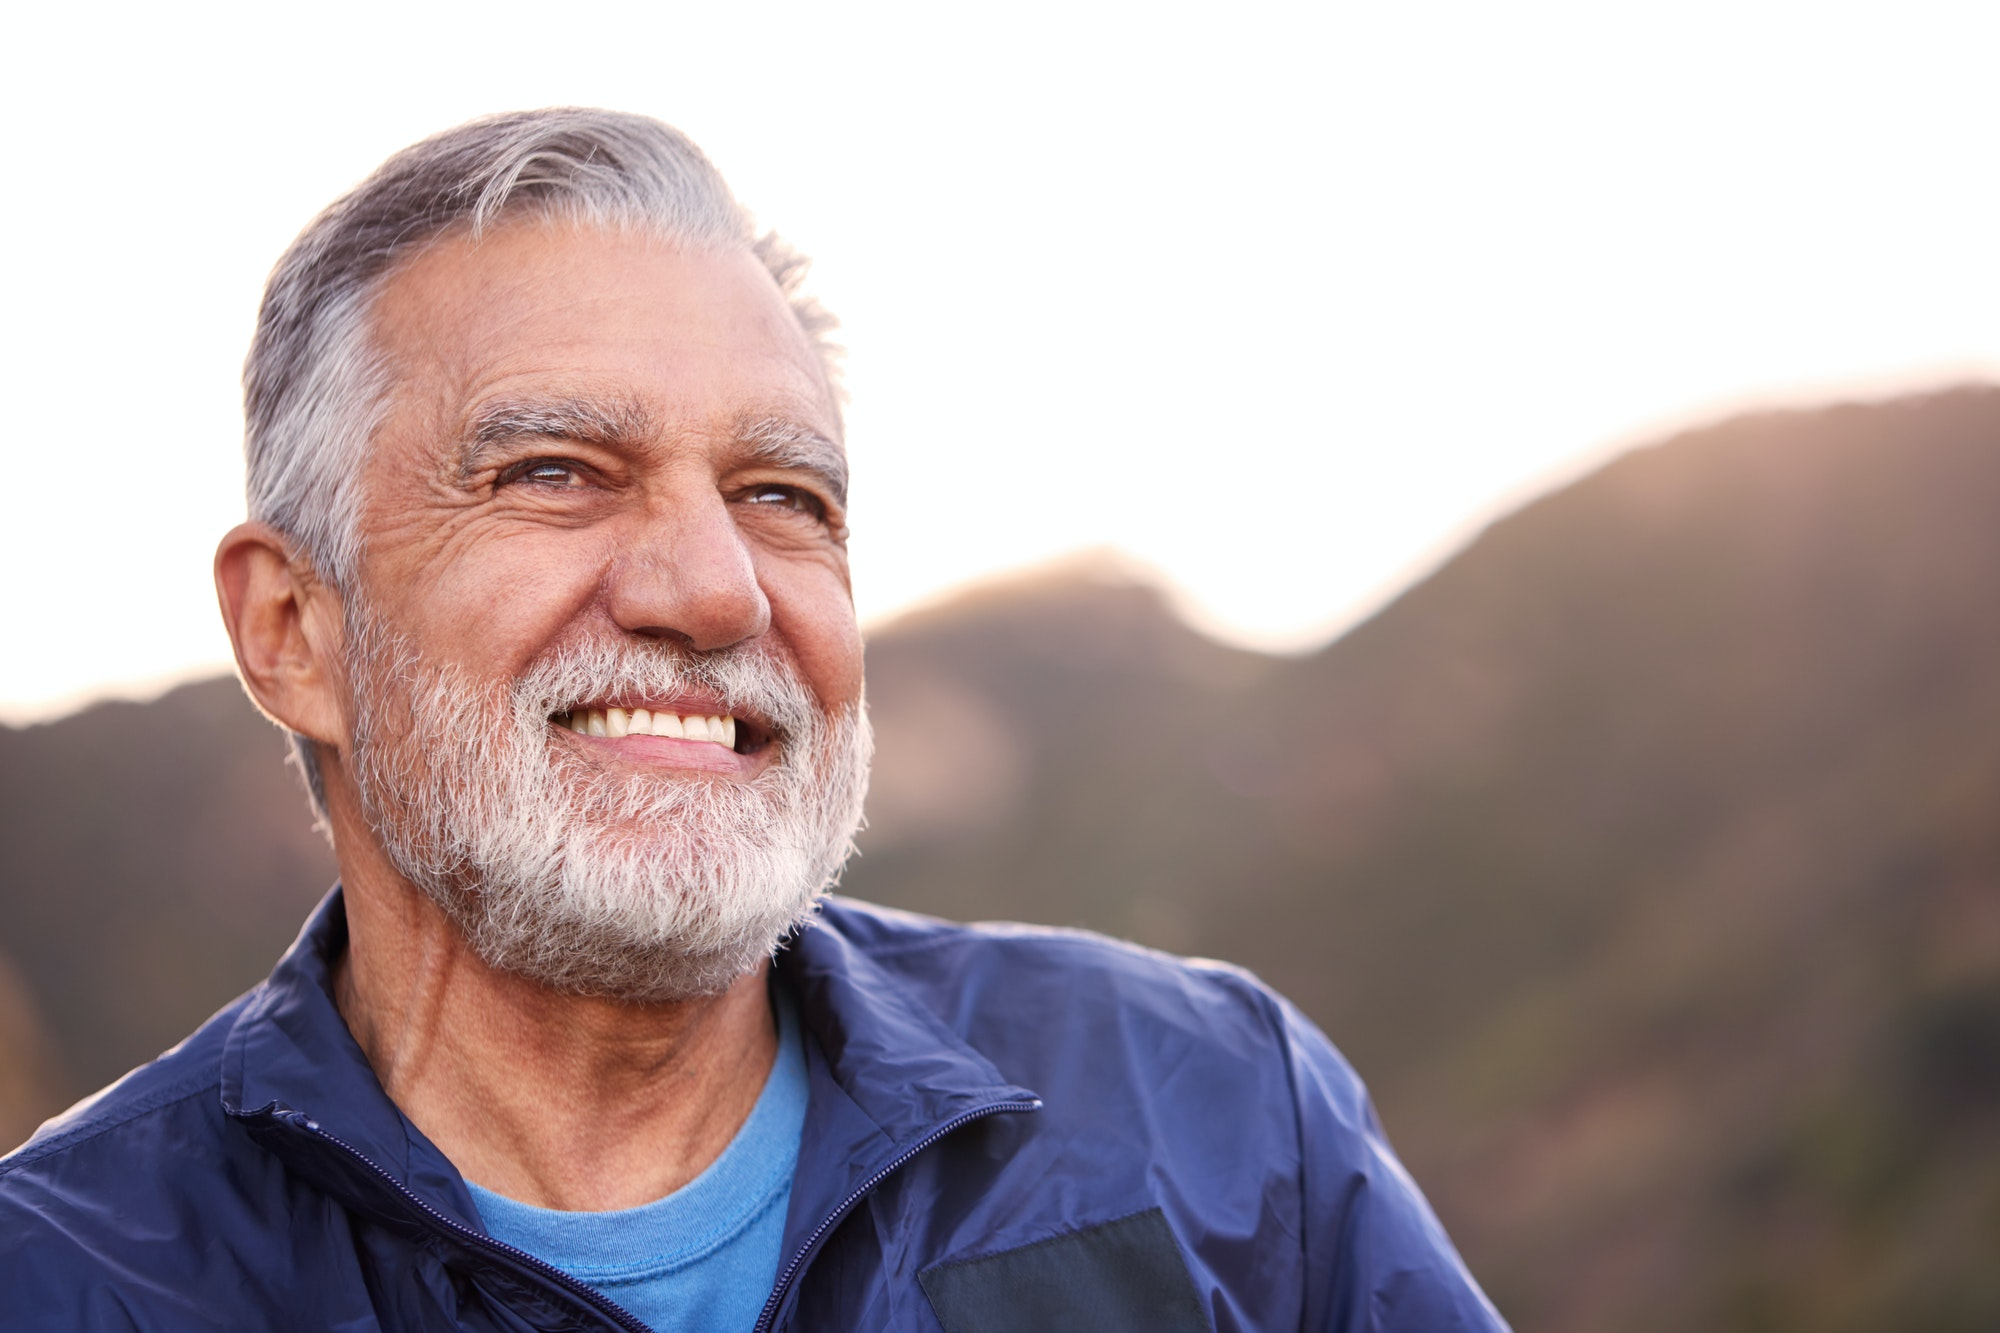 Portrait Of Smiling Hispanic Senior Man Outdoors In Countryside With Mountains In Background